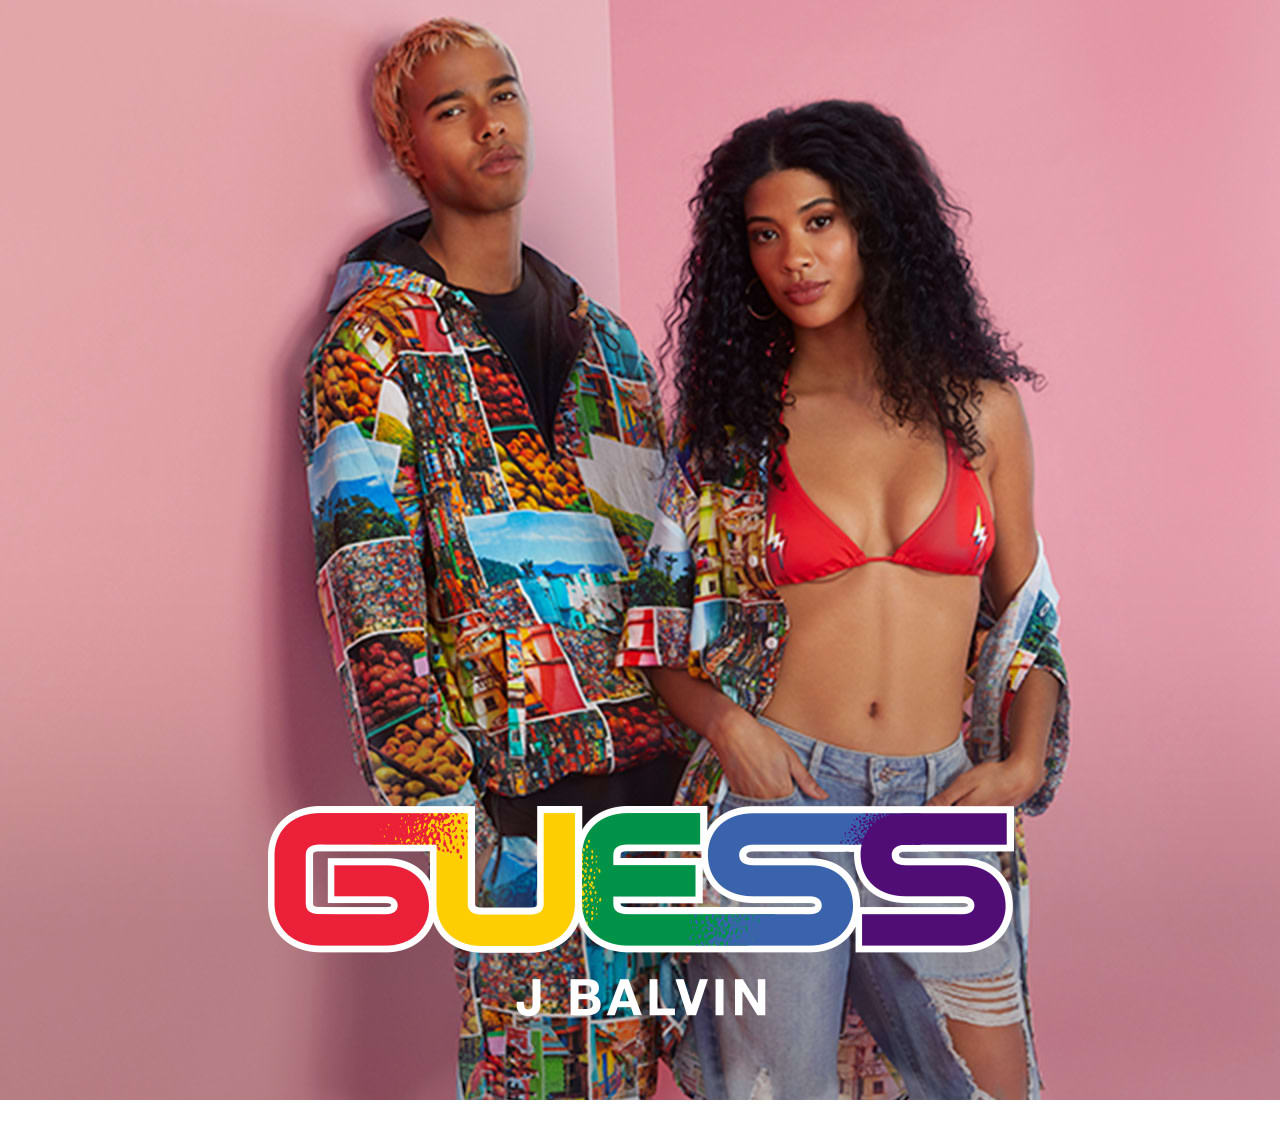 GUESS x J Balvin Colores collection for women and men